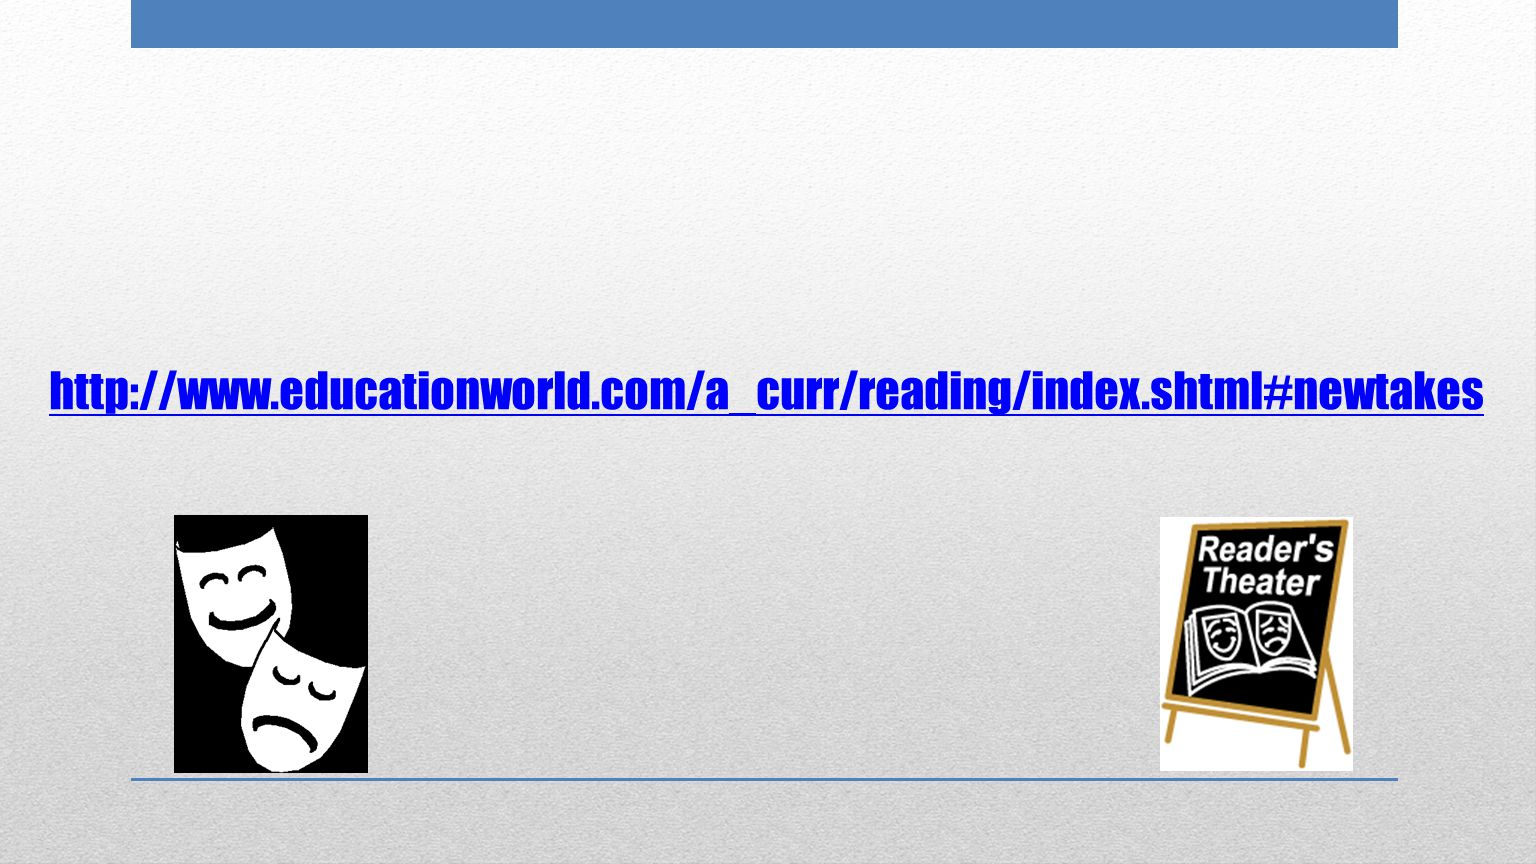 http://www.educationworld.com/a_curr/reading/index.shtml#newtakes